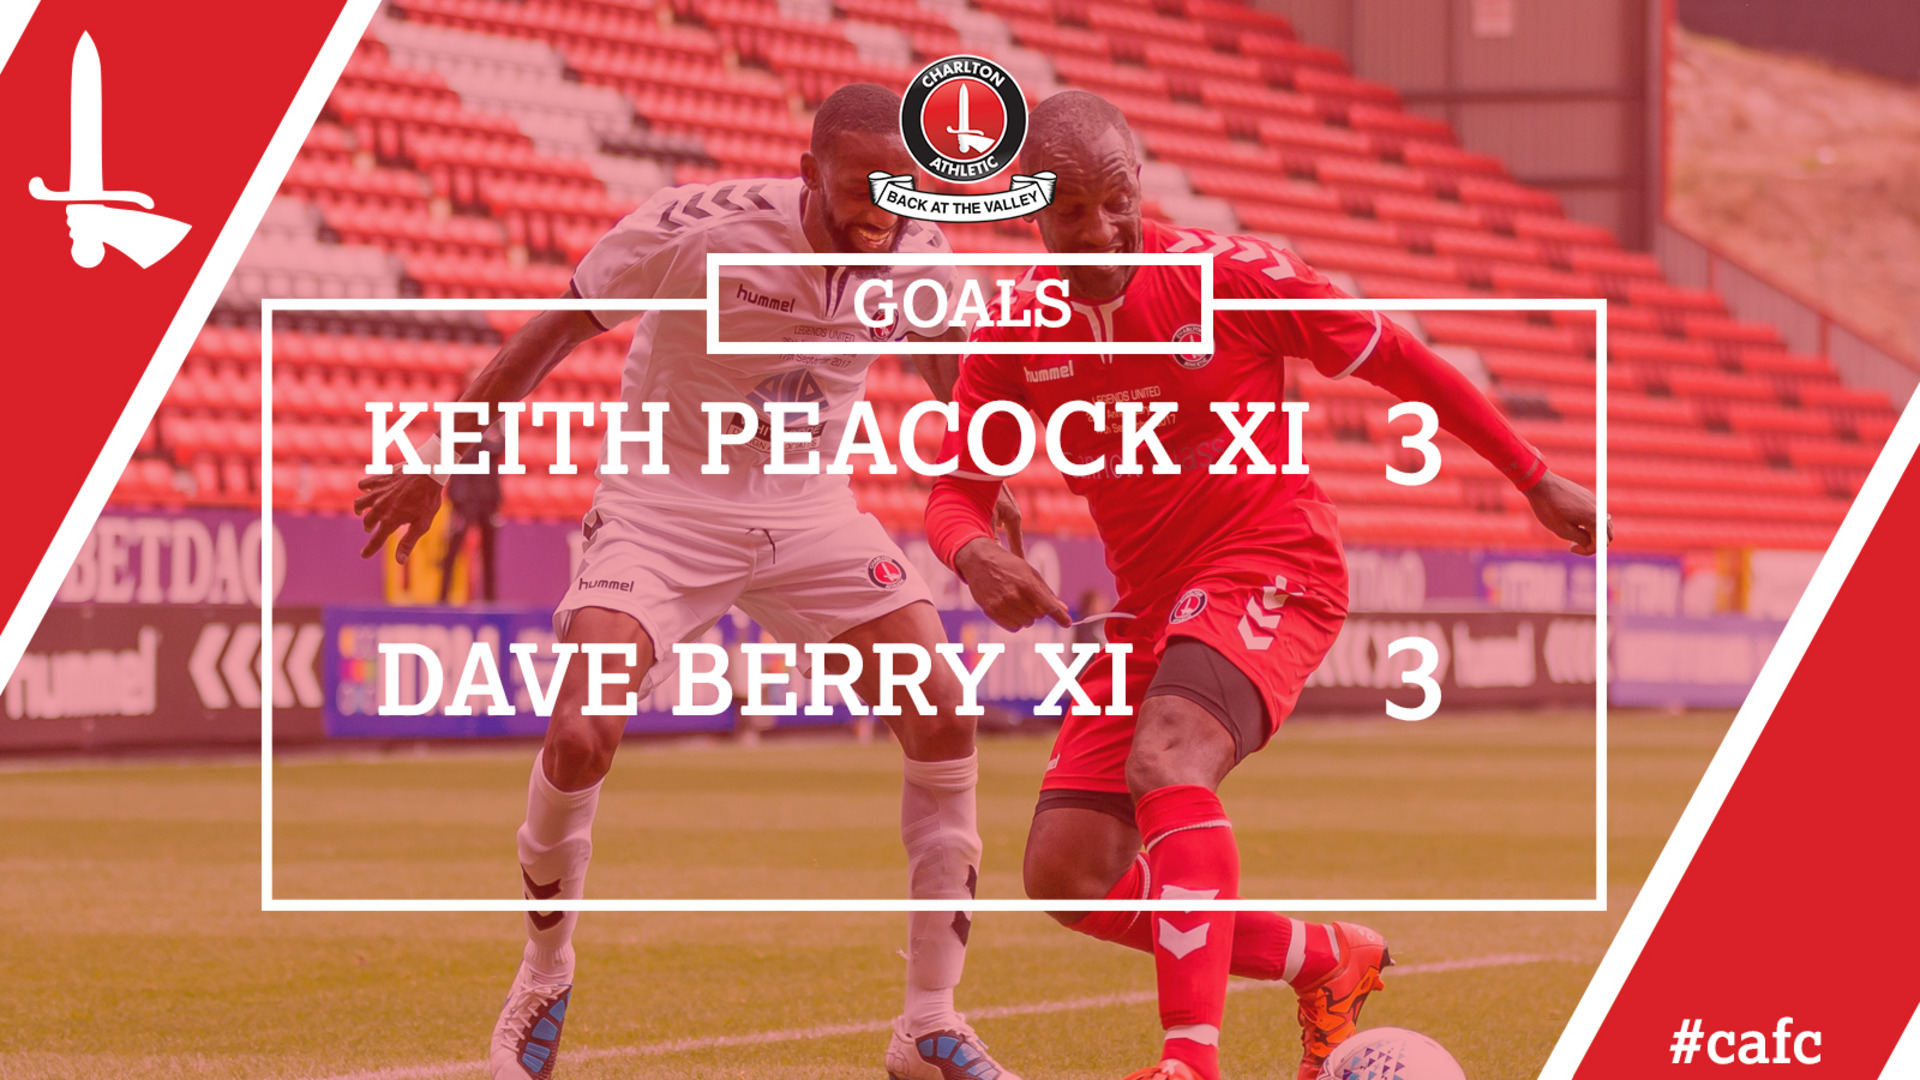 LEGENDS UNITED GOALS   Keith Peacock XI 3 Dave Berry XI 3